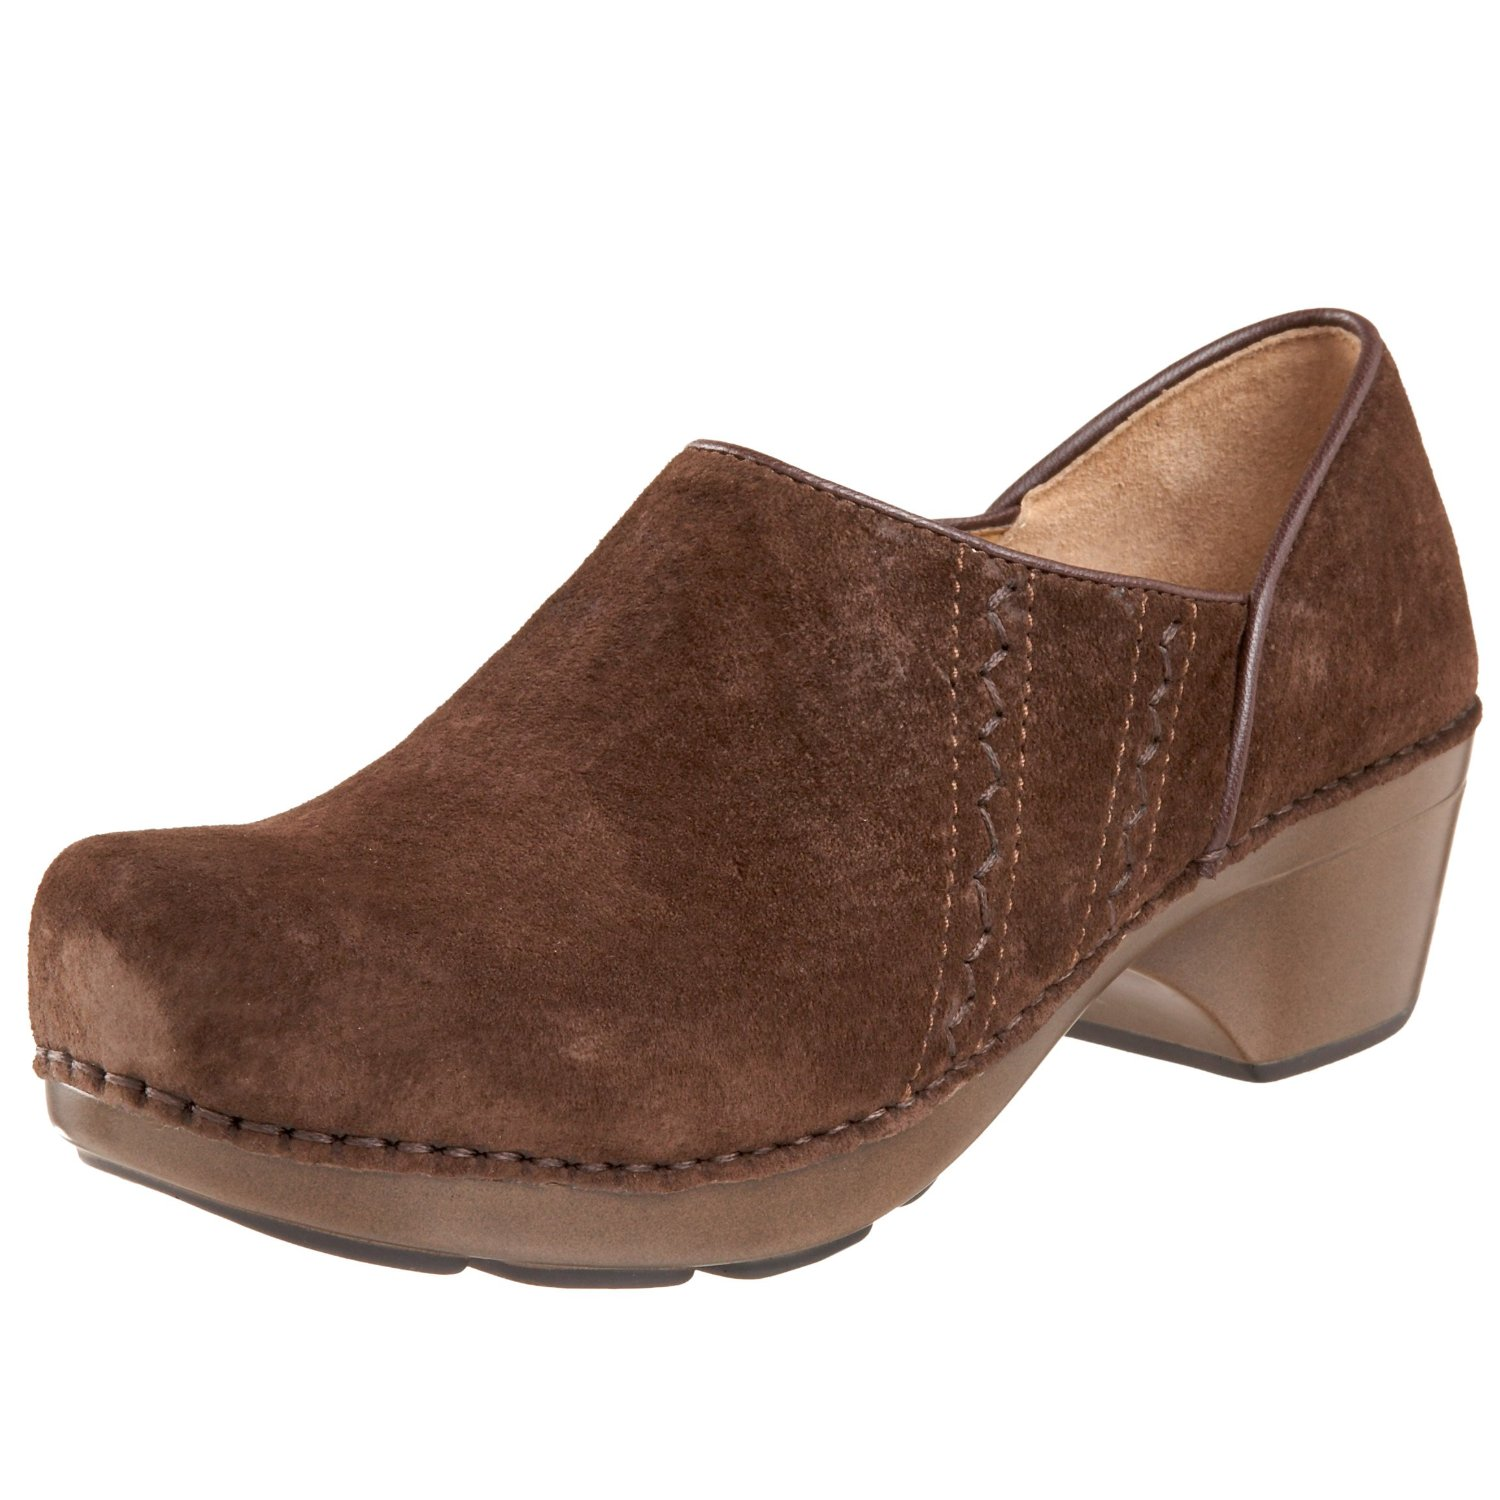 My Bestprice Dansko Shoes. Brick Wall In Dining Room. Design On A Dime Living Rooms. Big Lots Dining Room Sets. Beauty And The Beast Dining Room